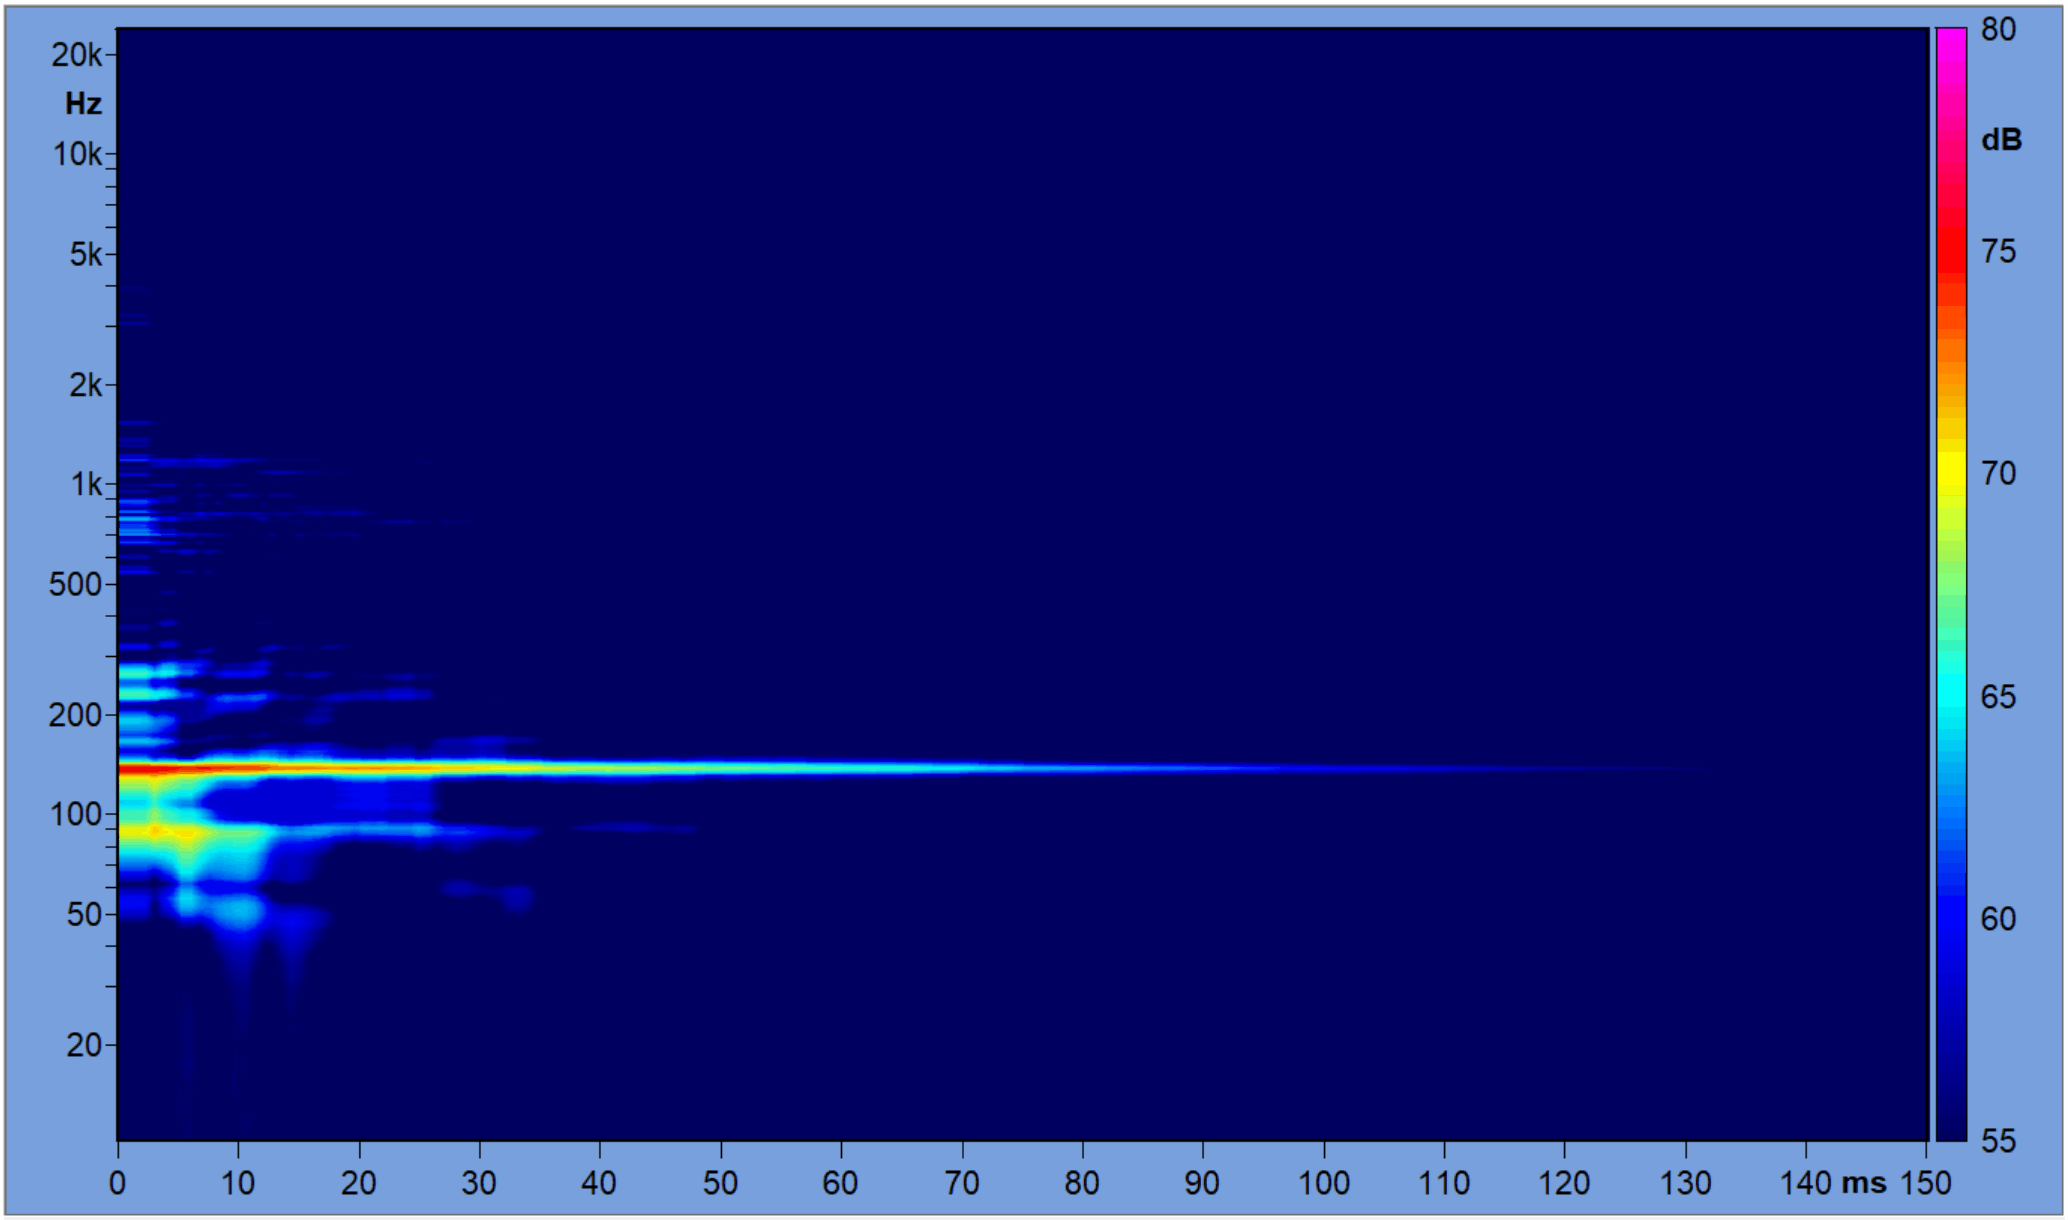 Figure 4 - Frequency/Time plot of the RIR.